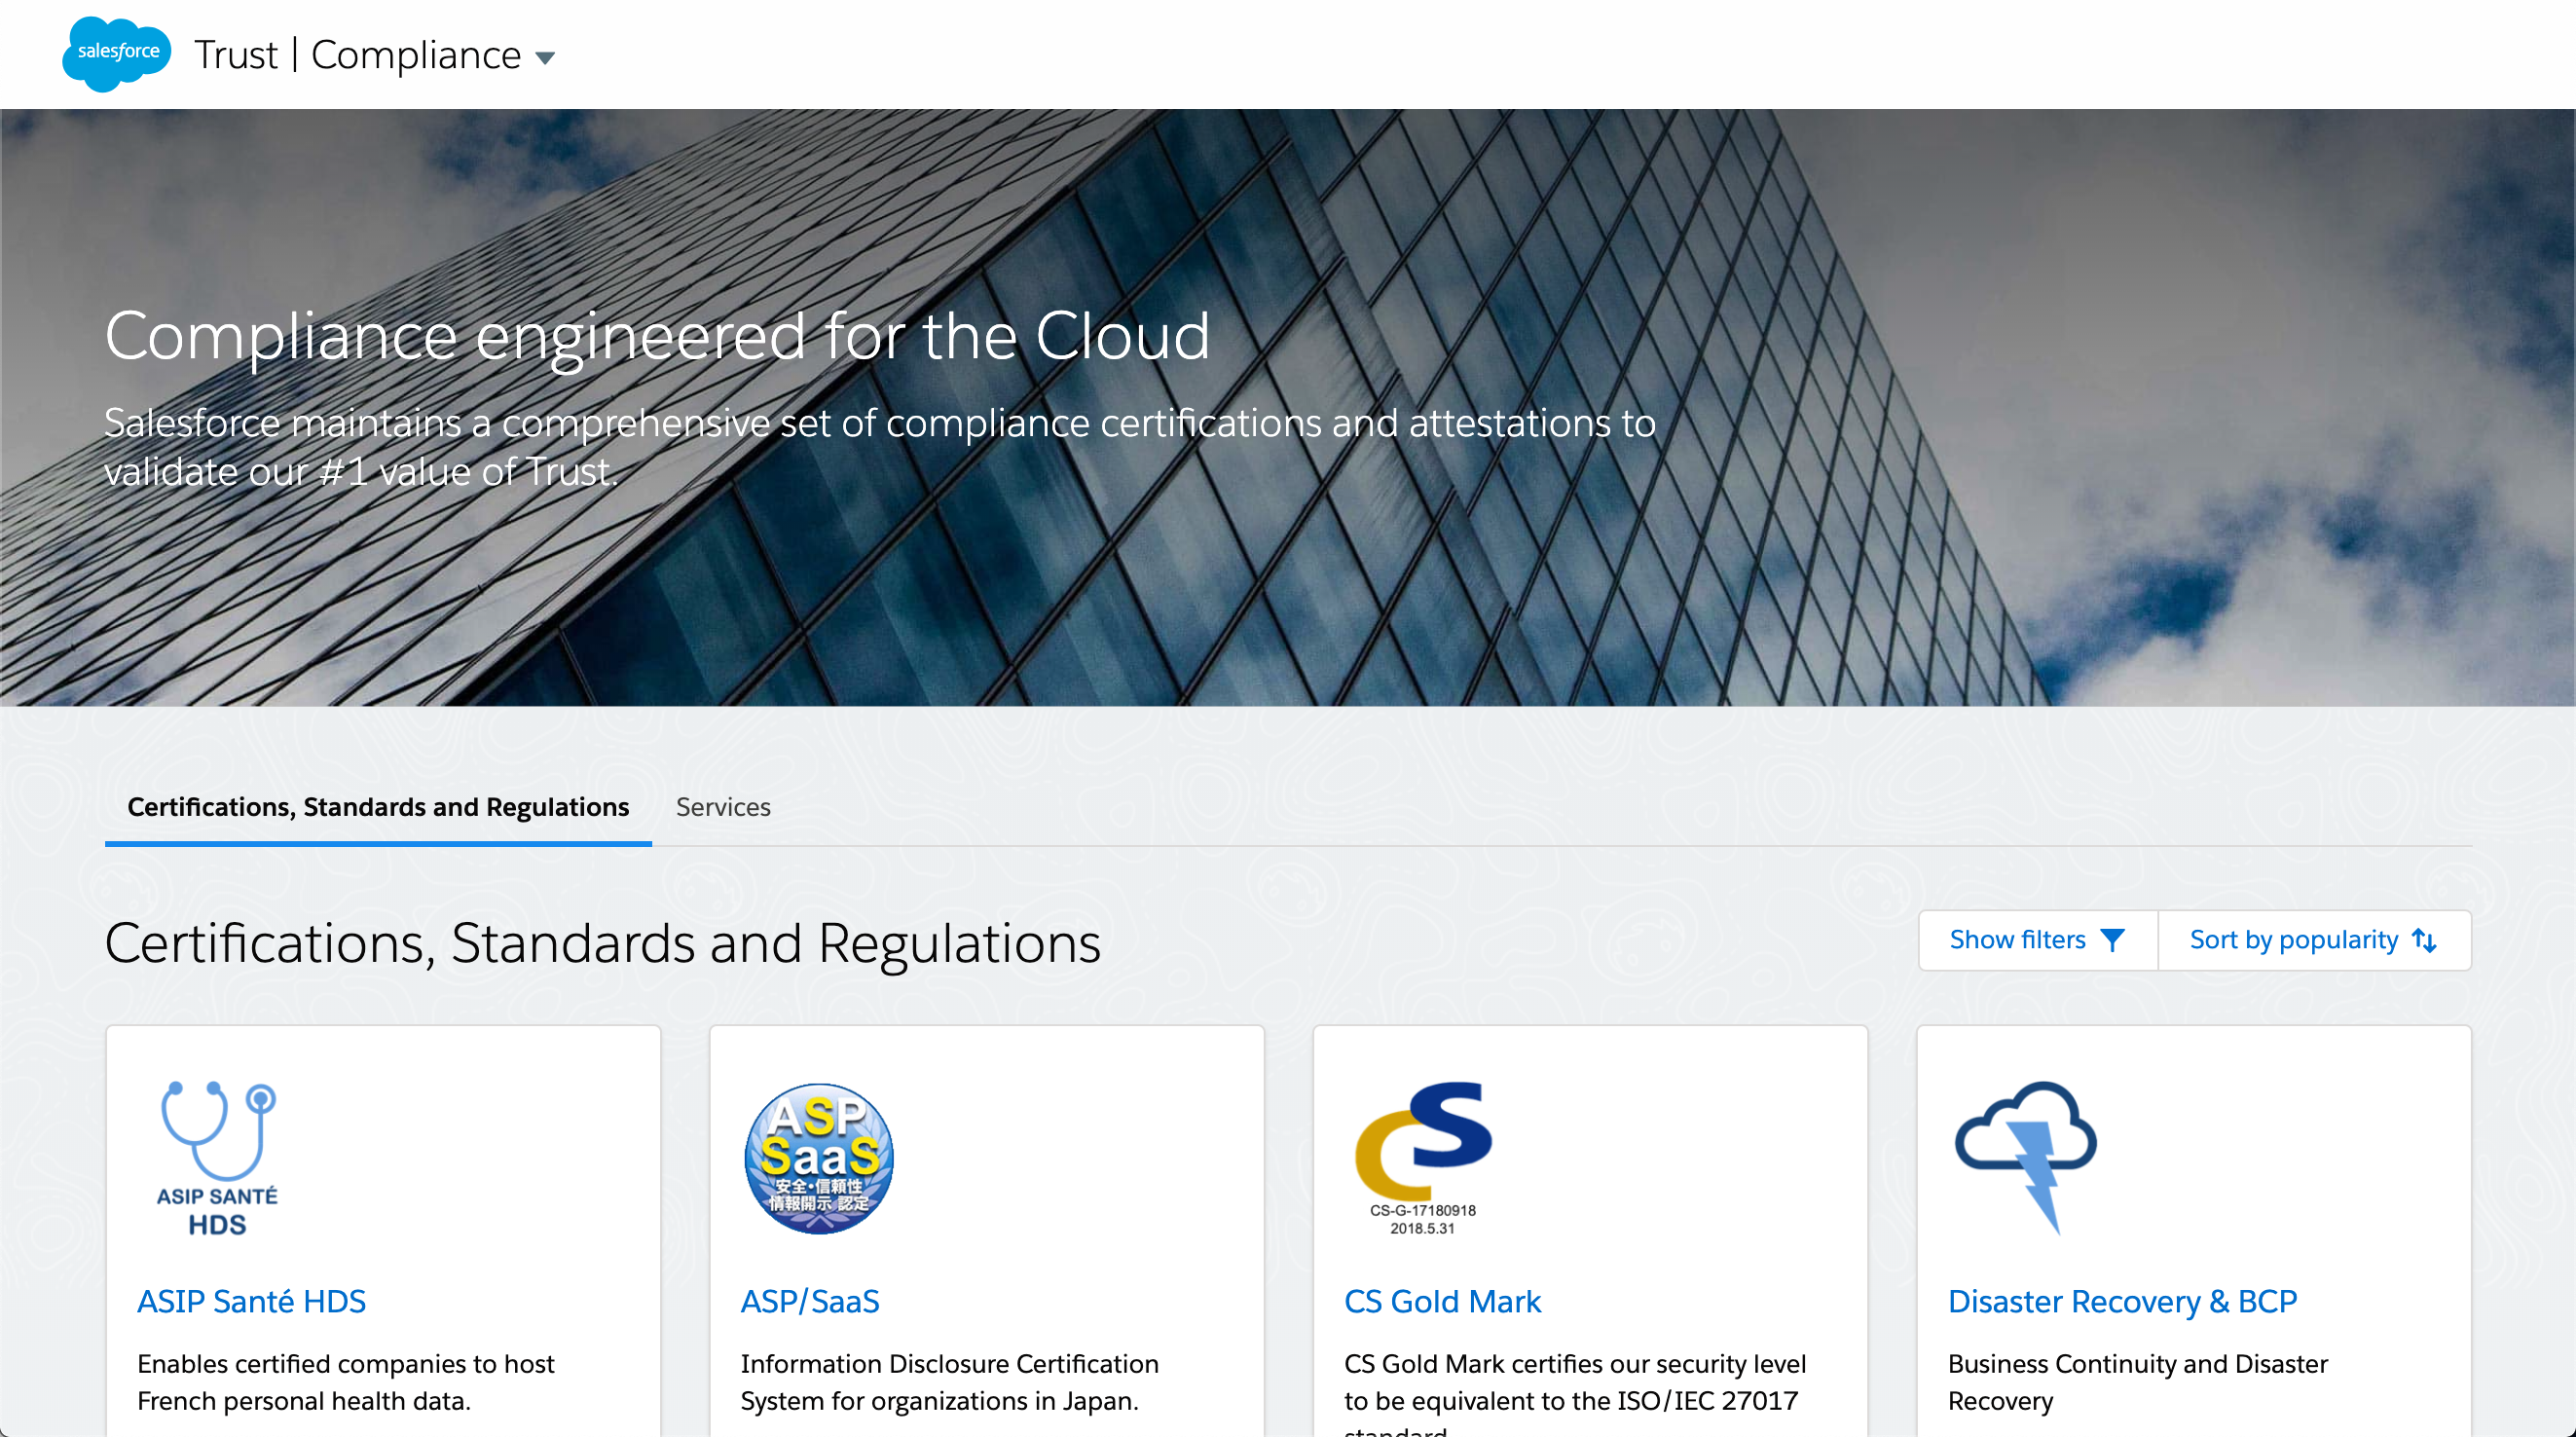 The Compliance page on the Salesforce Trust site.